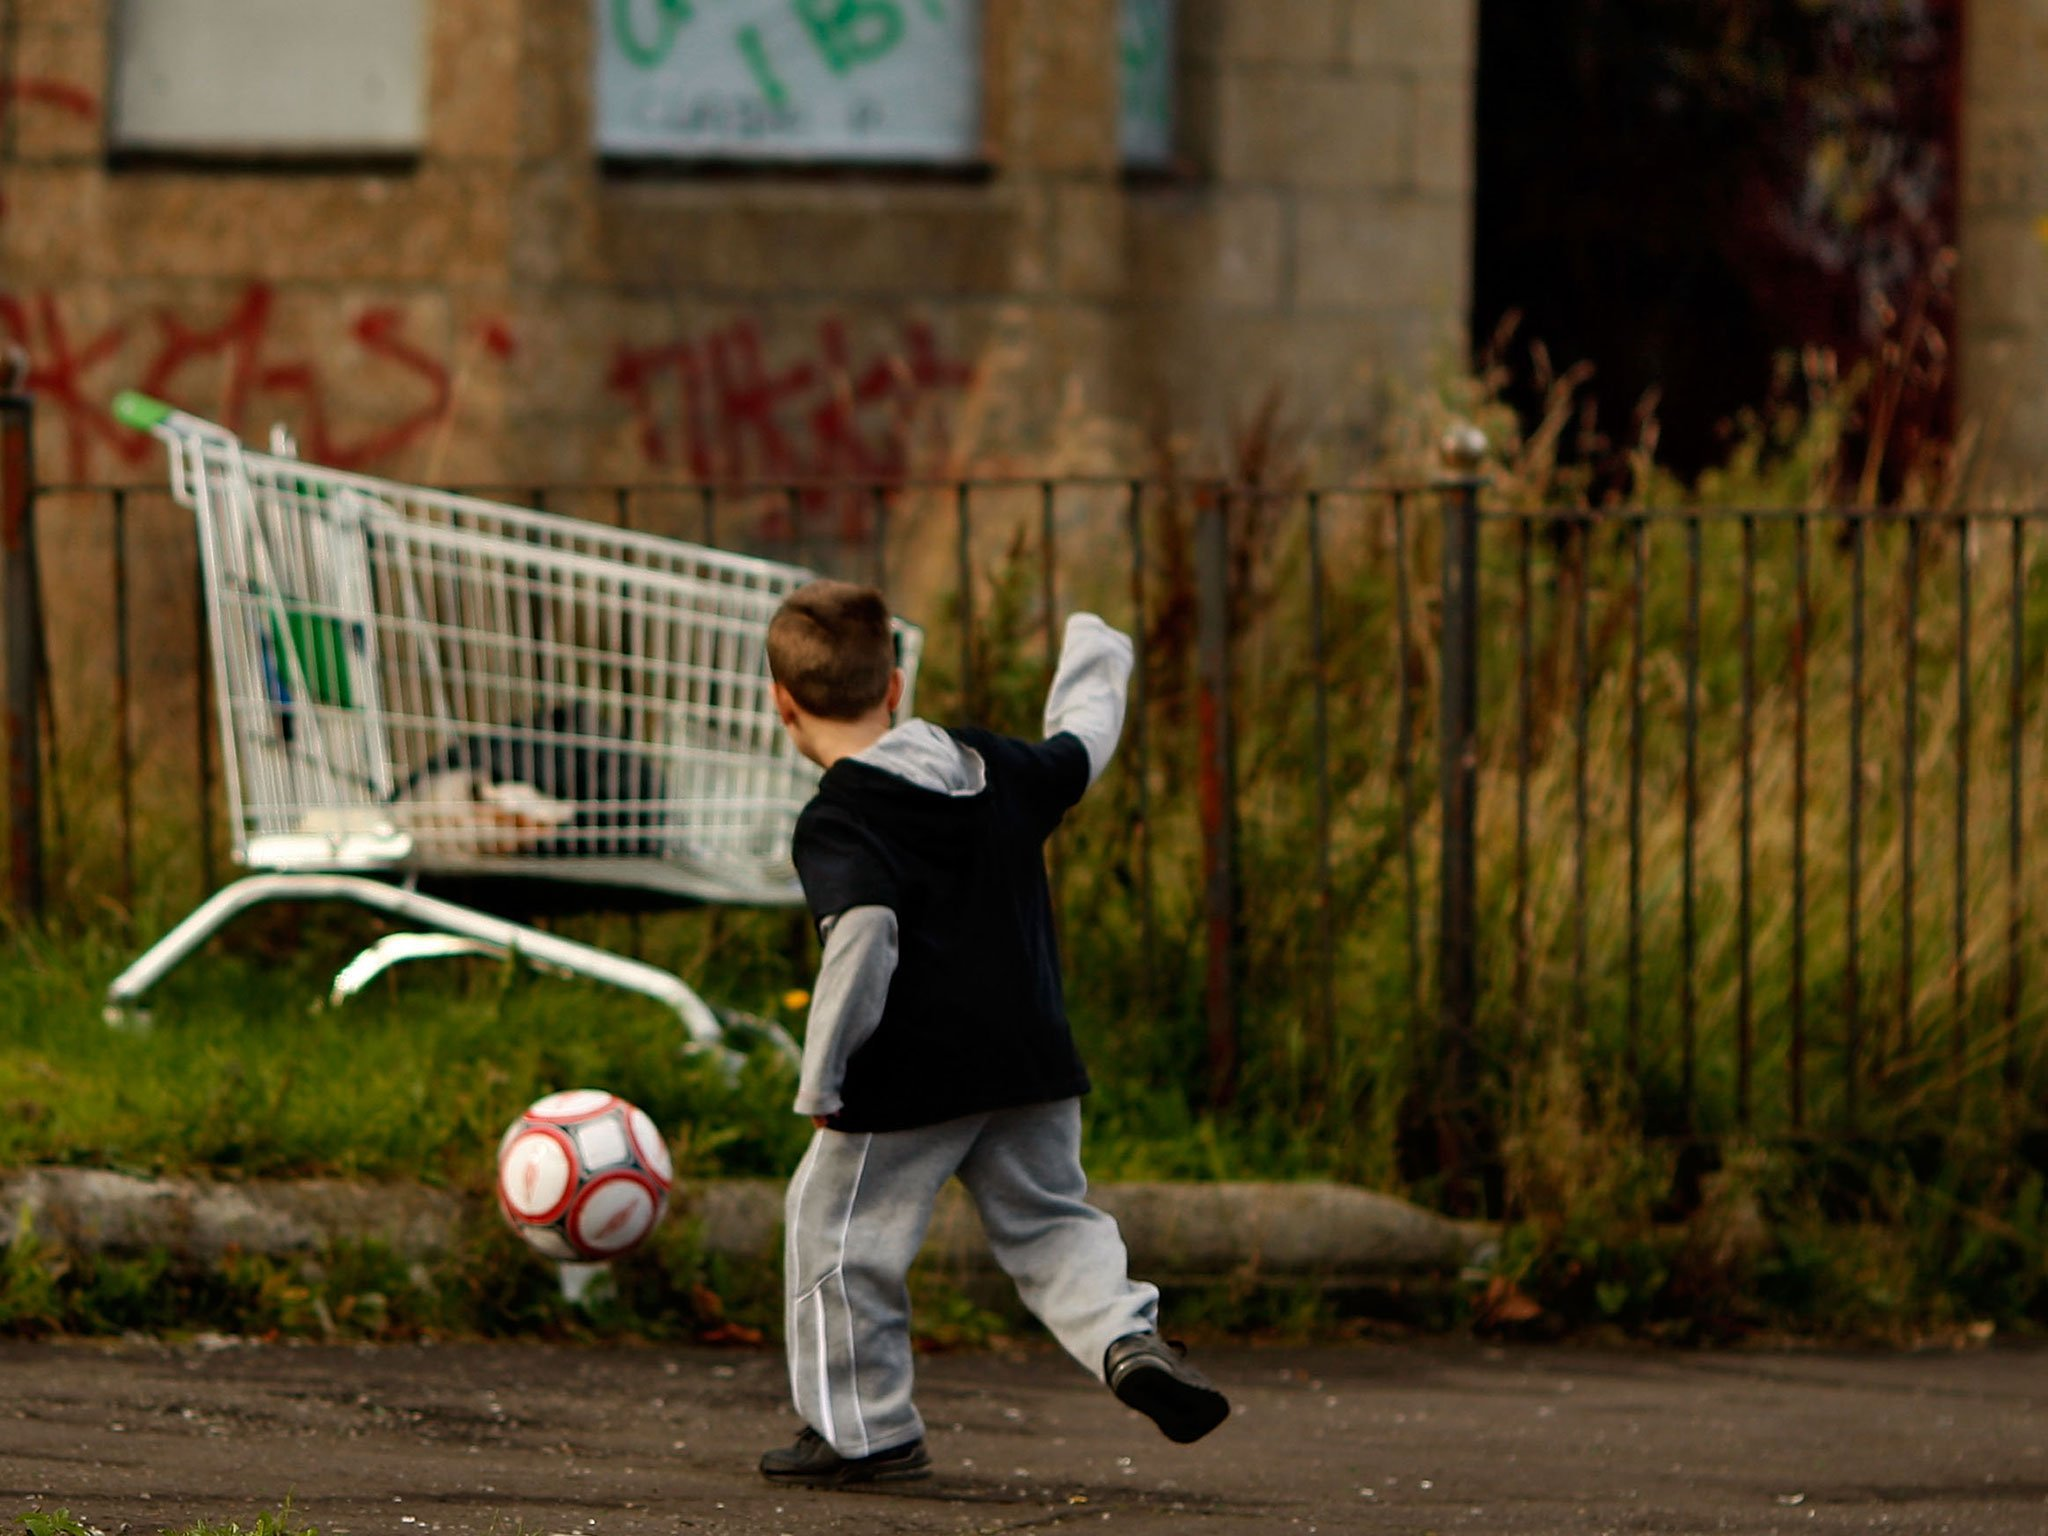 More than 4,000,000 children are still living in poverty in the UK